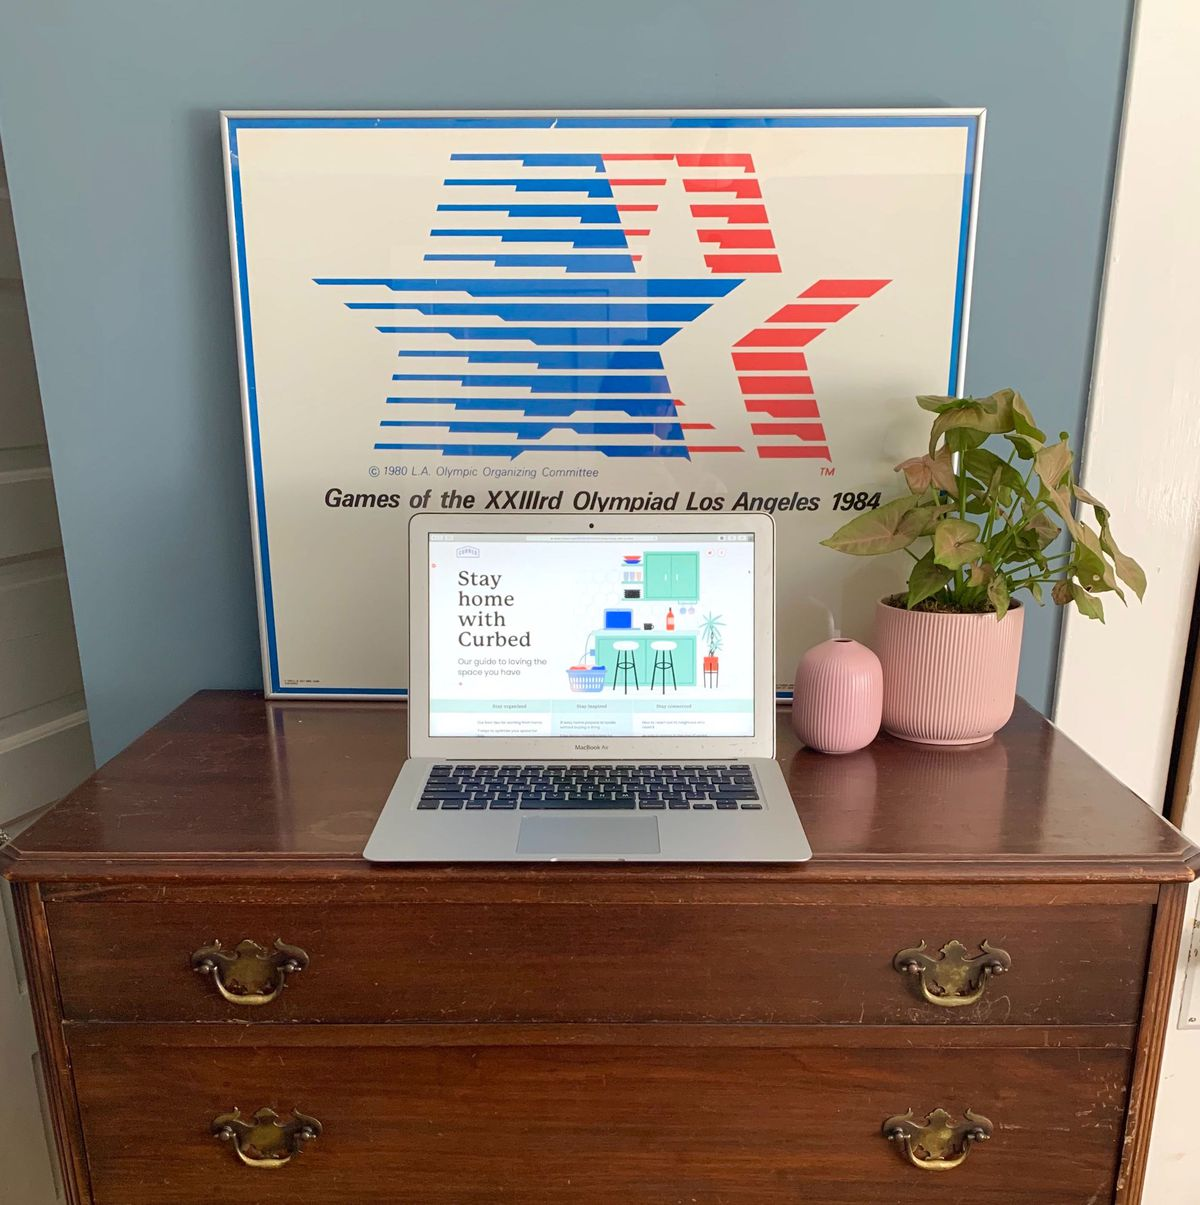 A laptop sits on a wooden chest, which also has a pink candle and planter.